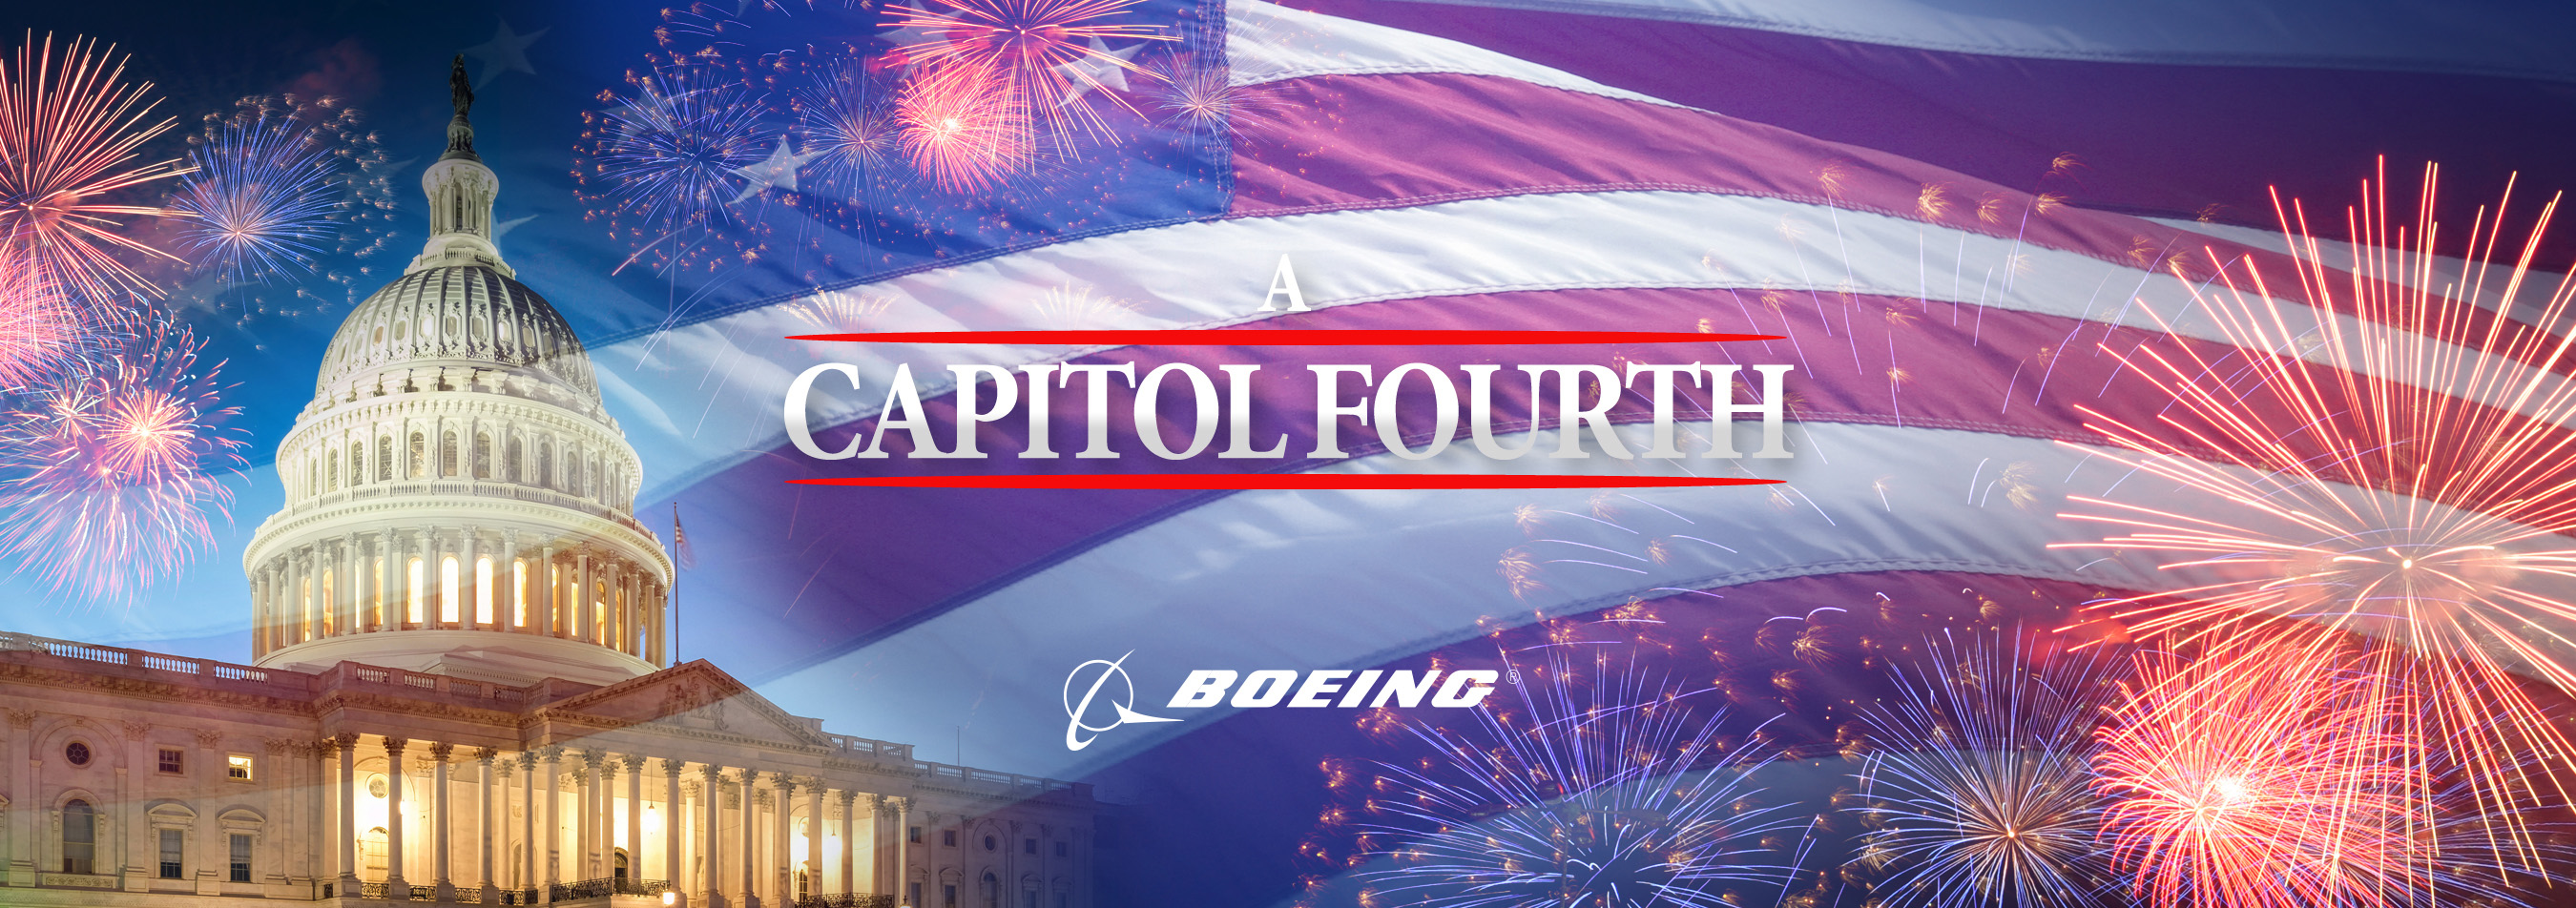 Fireworks at U.S. Capitol with A Capitol Fourth and Boeing logo overlayed